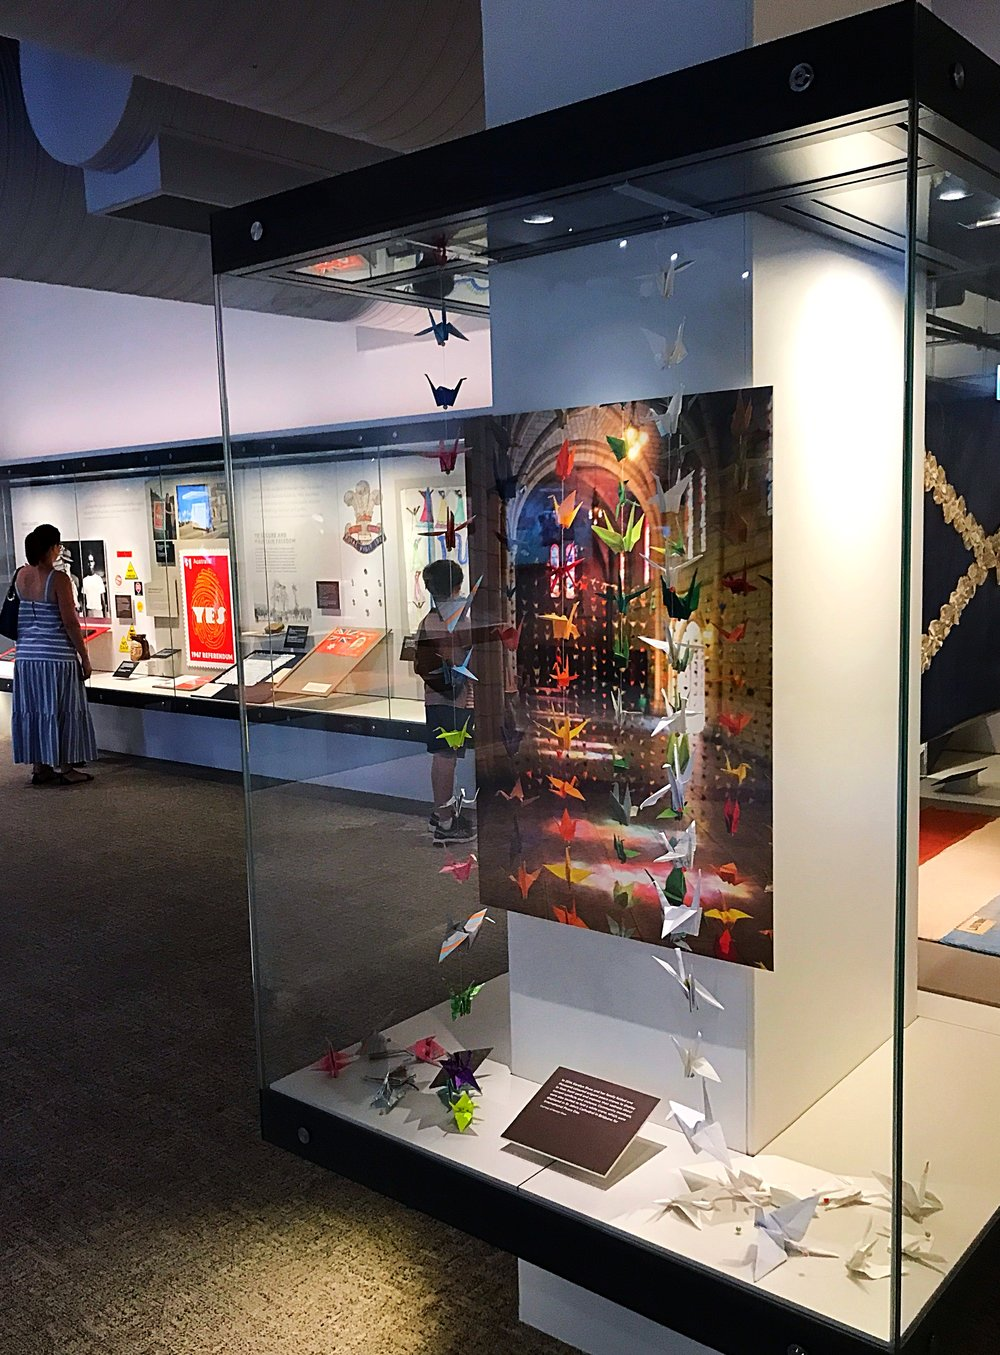 Peace Crane Project 2014 exhibit within the Anzac Legacy Gallery, Queensland Museum, Brisbane.